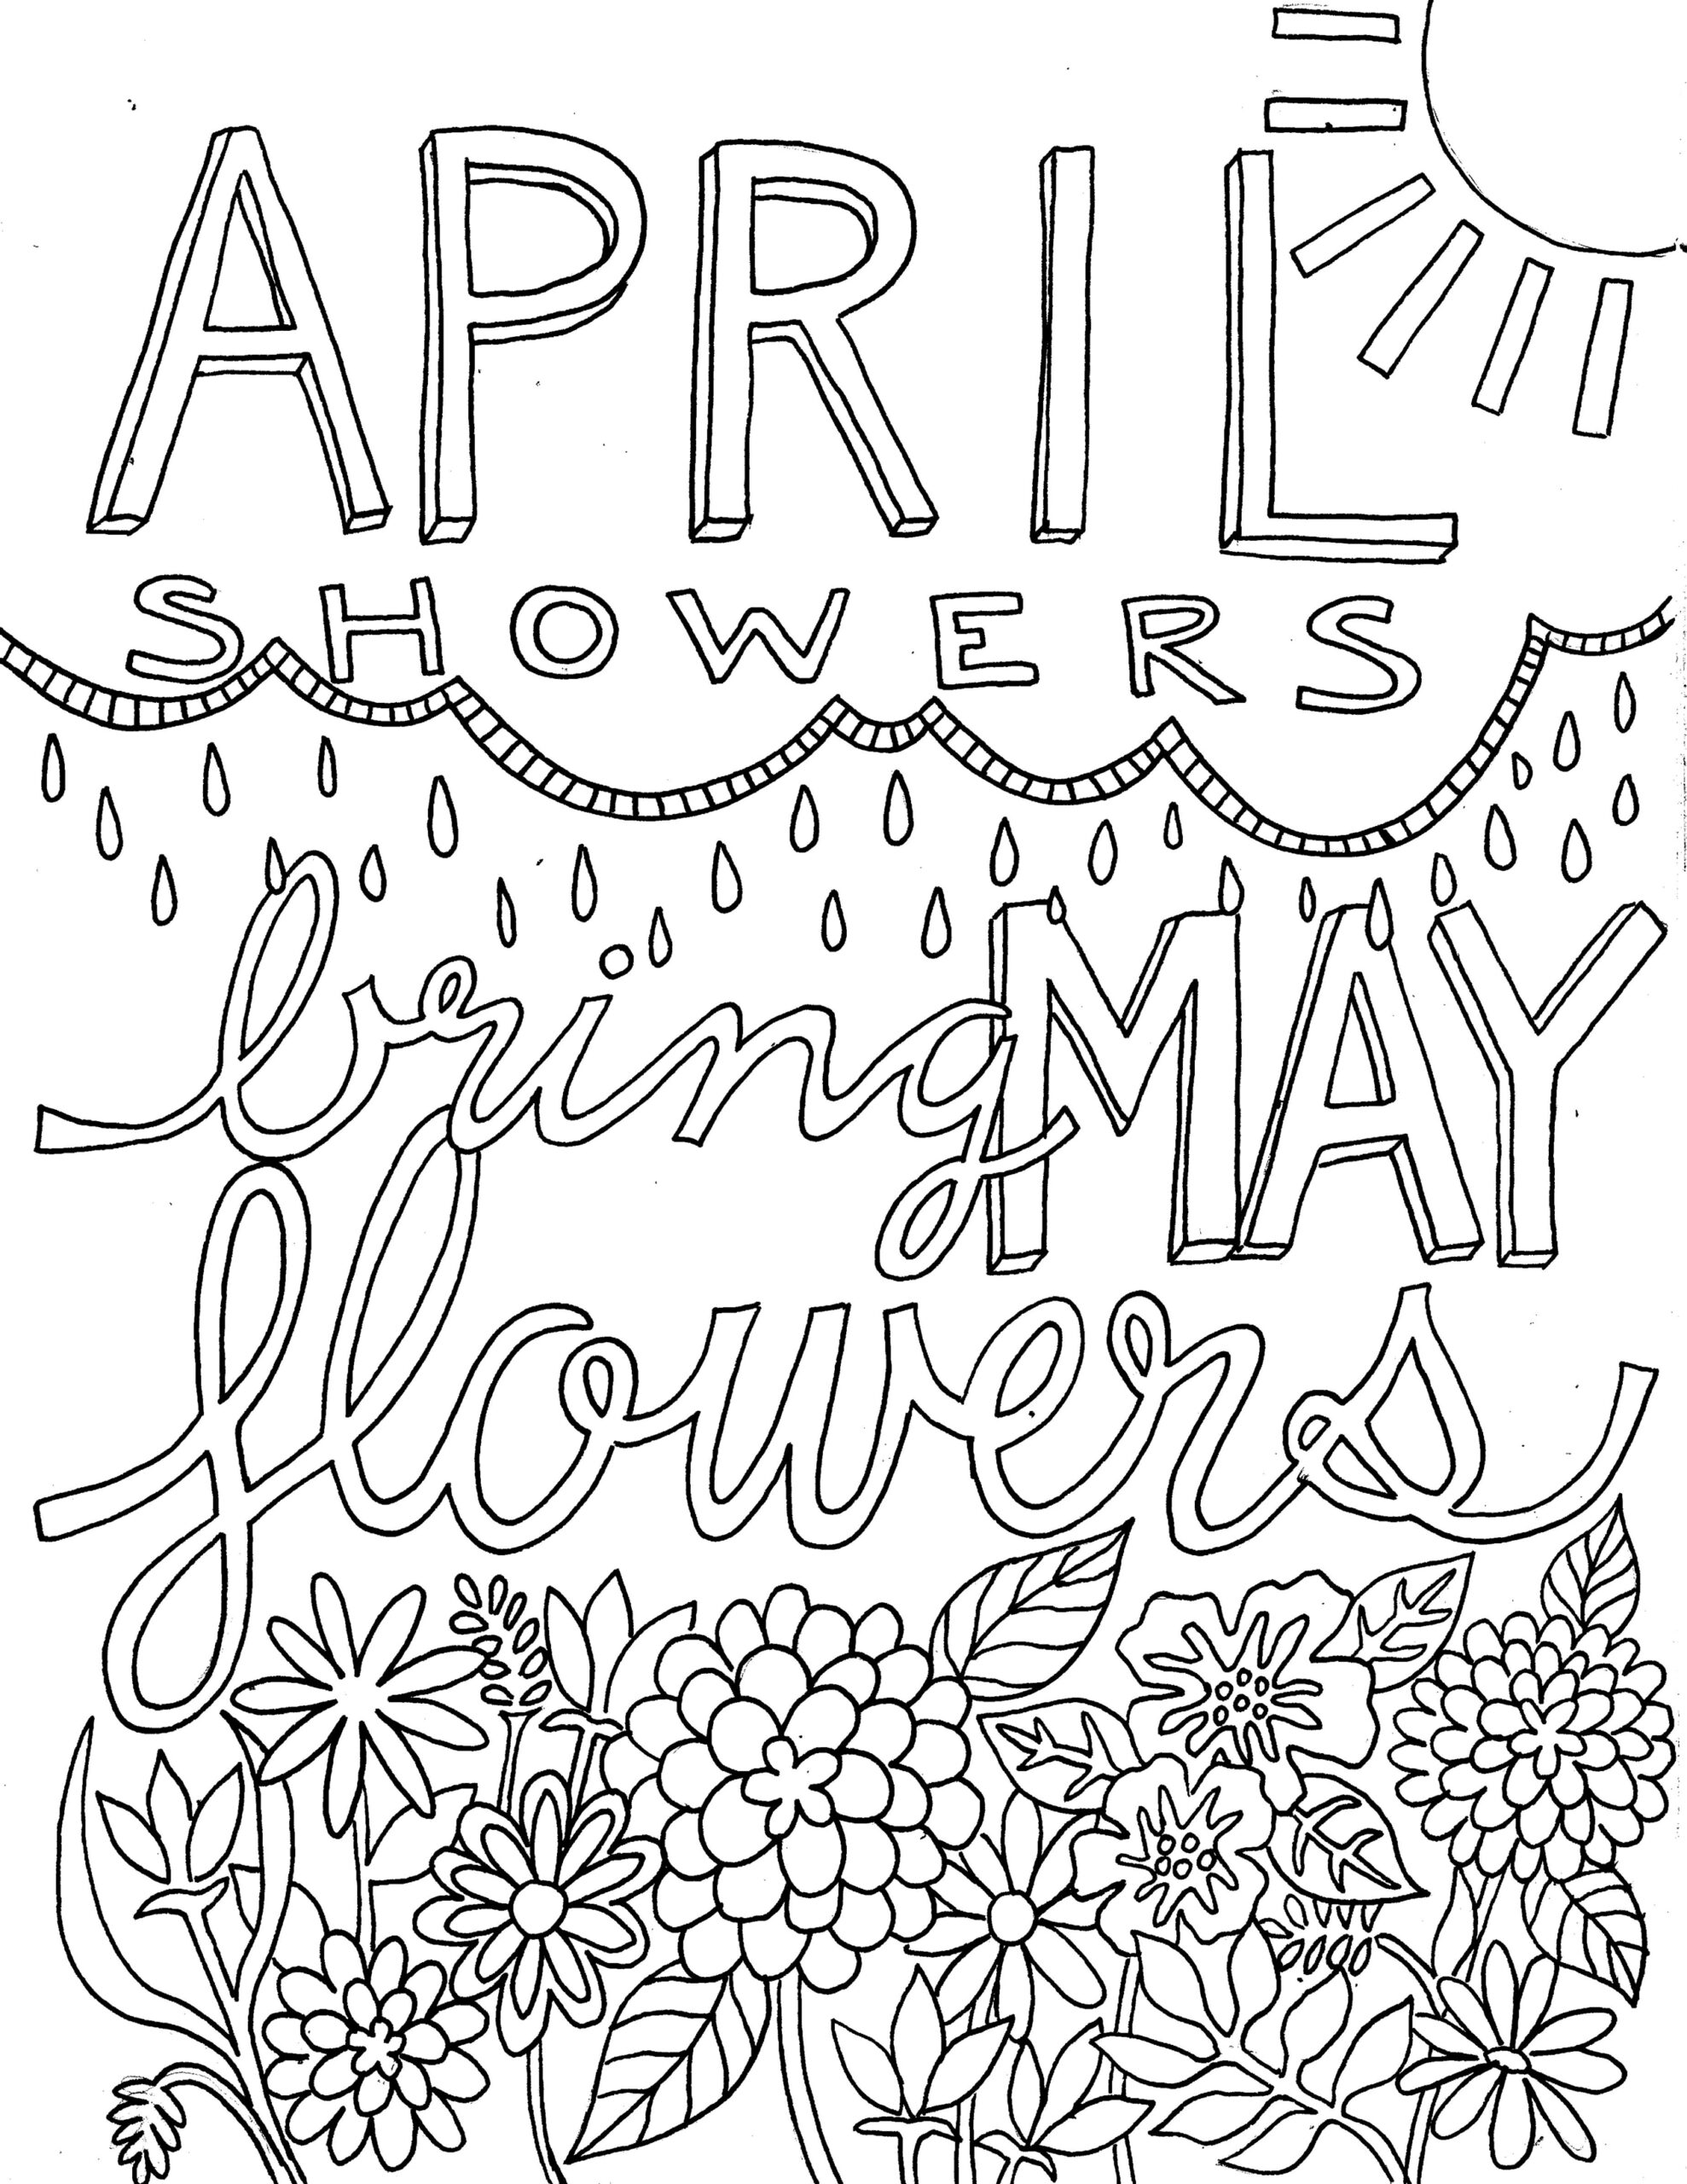 happy may from victory road april showers bring flowers coloring super heros outlines of coloring pages April Showers Bring May Flowers Coloring Page